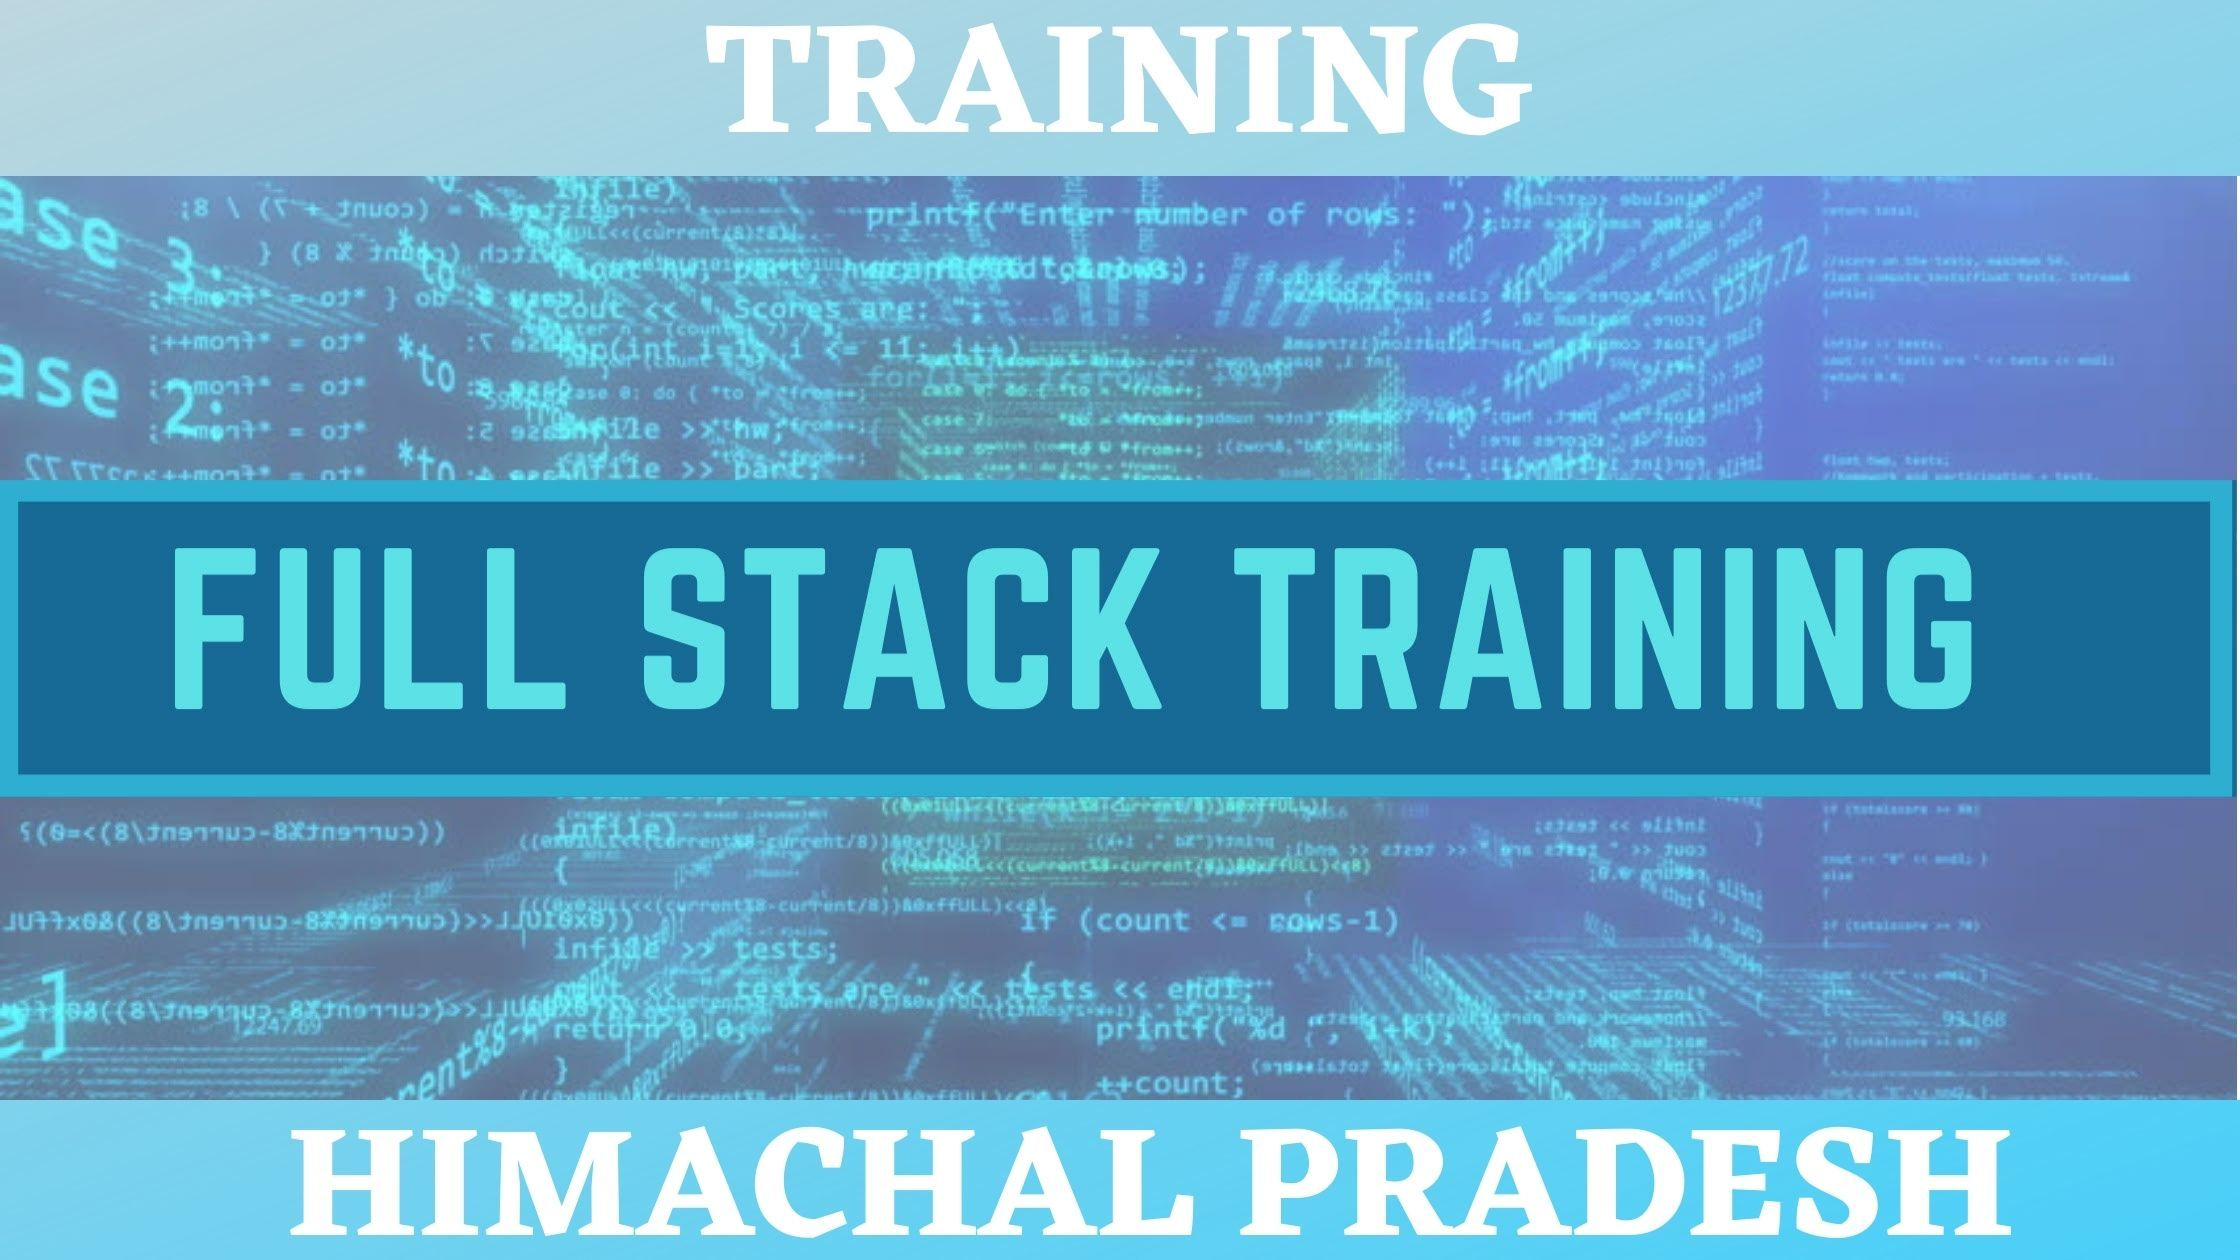 full_stack_training_in_himachal_pradesh -background.jpeg